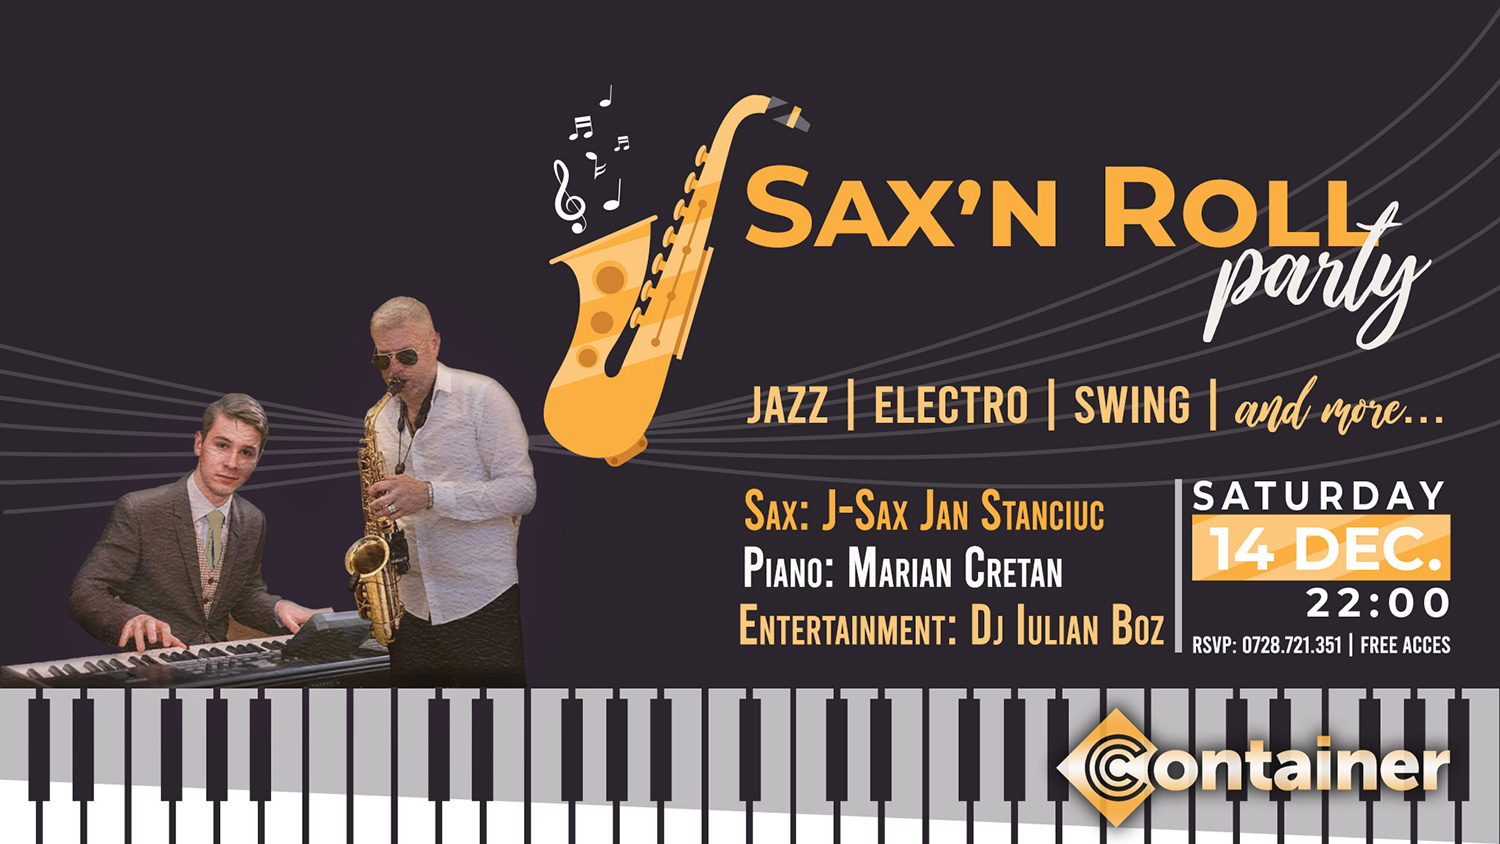 Sax'n Roll Party